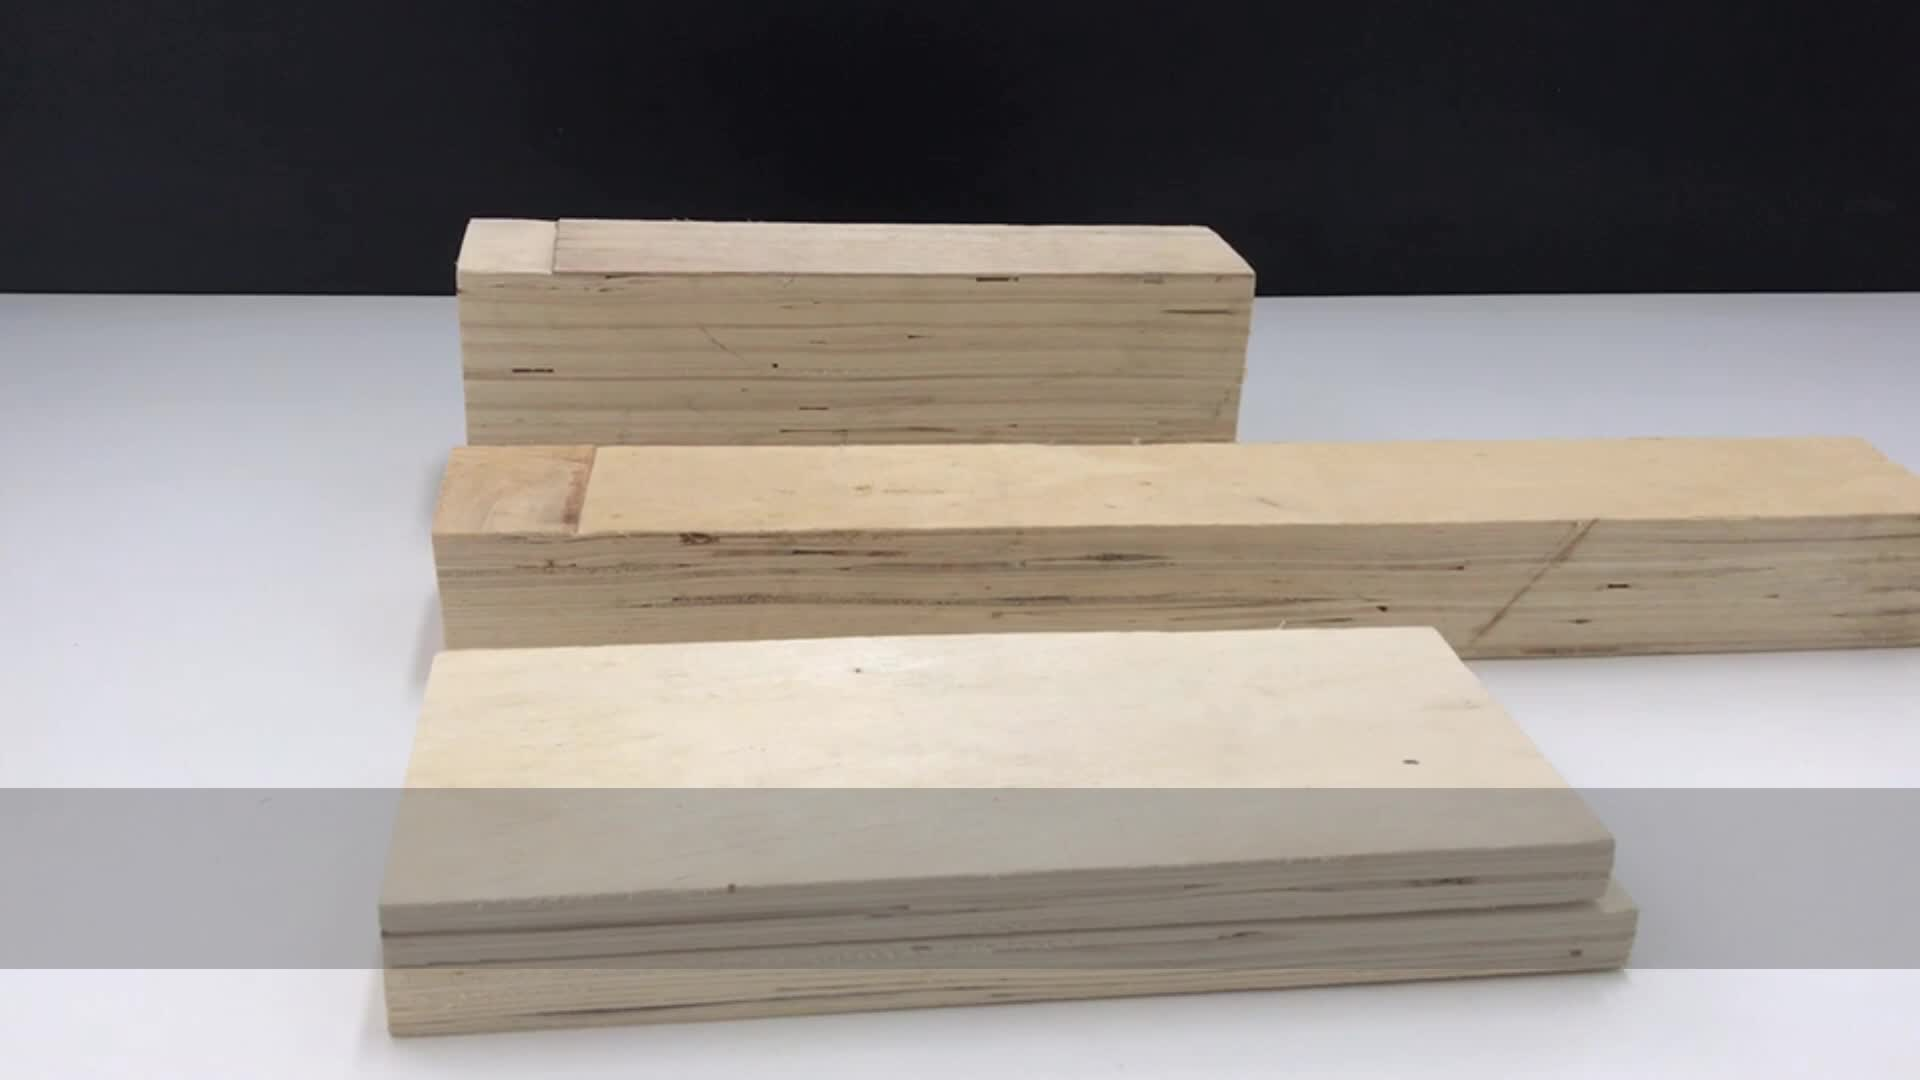 Packing Grade LVL Plywood/Wood for Making Pallets